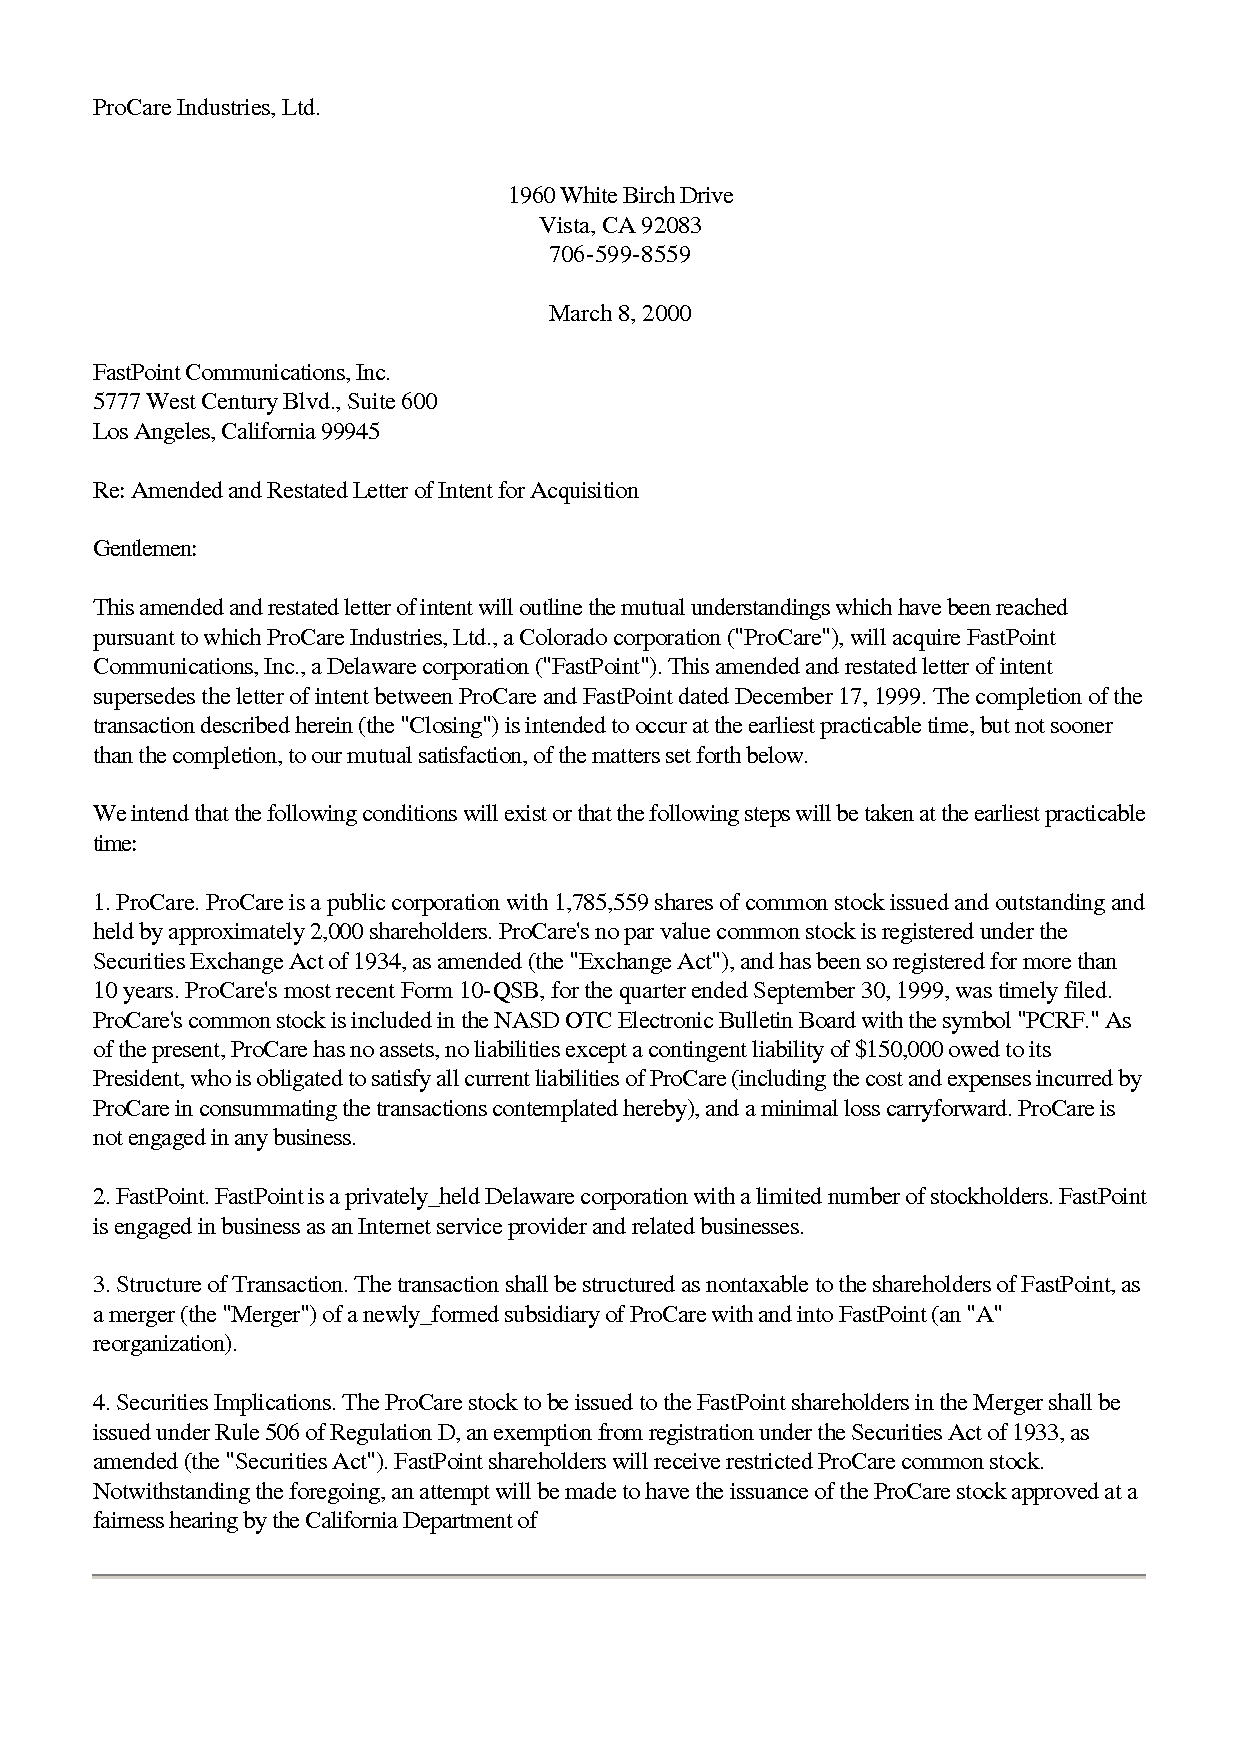 Subcontractor Letter Of Intent Template - Contractor Letter Intent Sample for Accreditation Building Not to